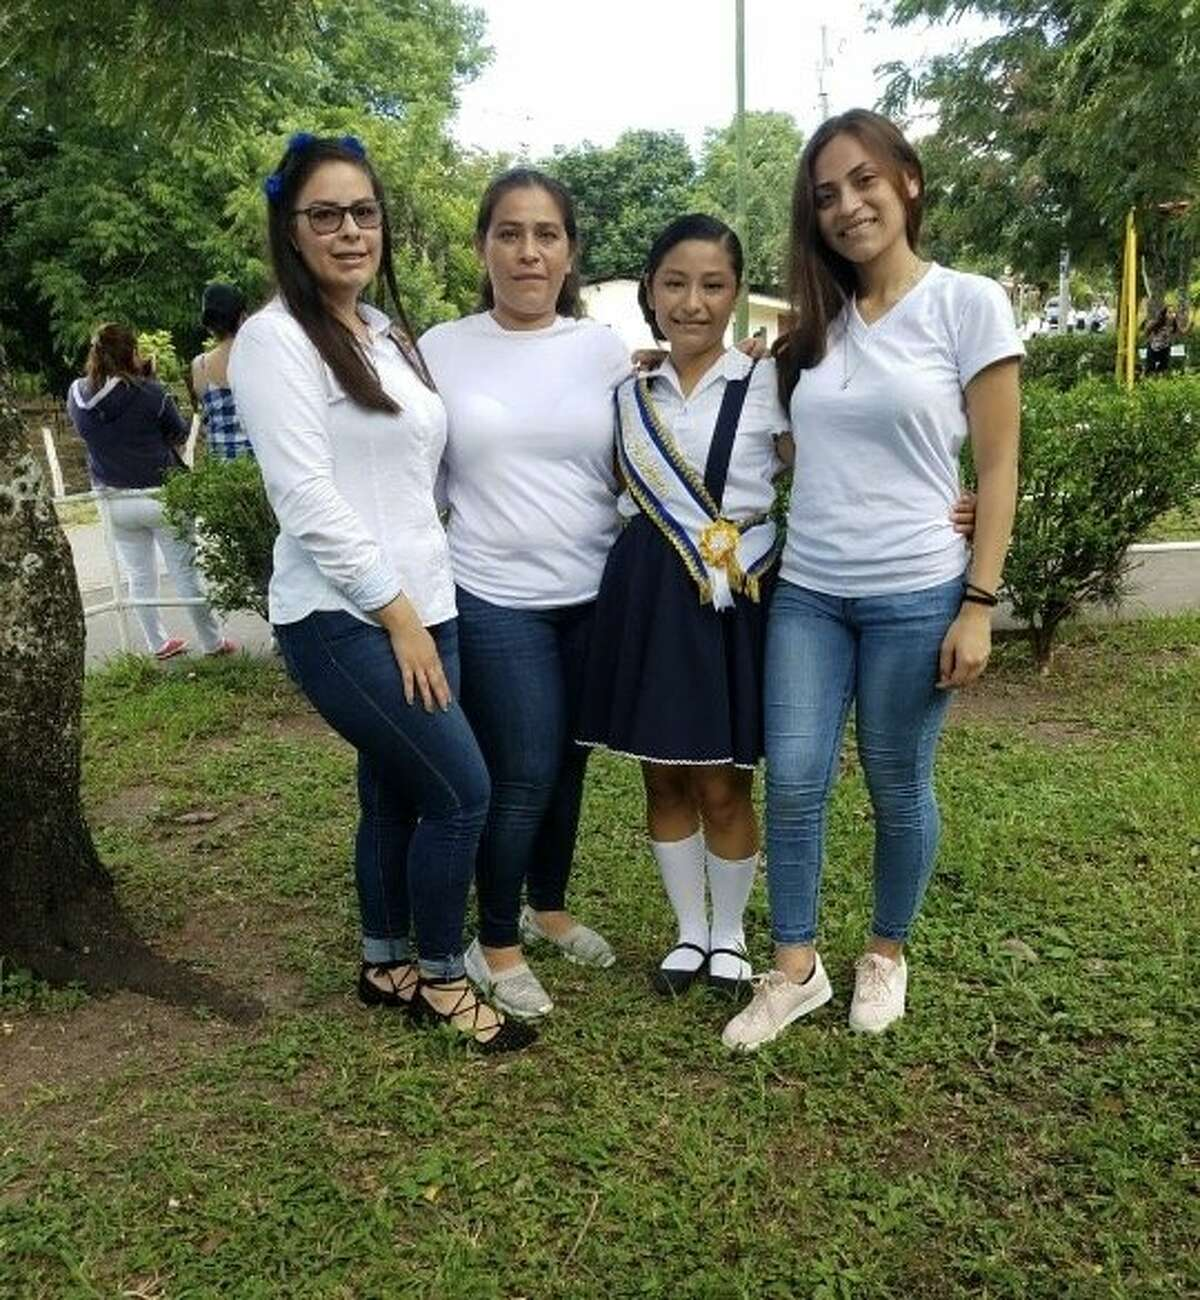 Martha Otero, left, and her three daughters